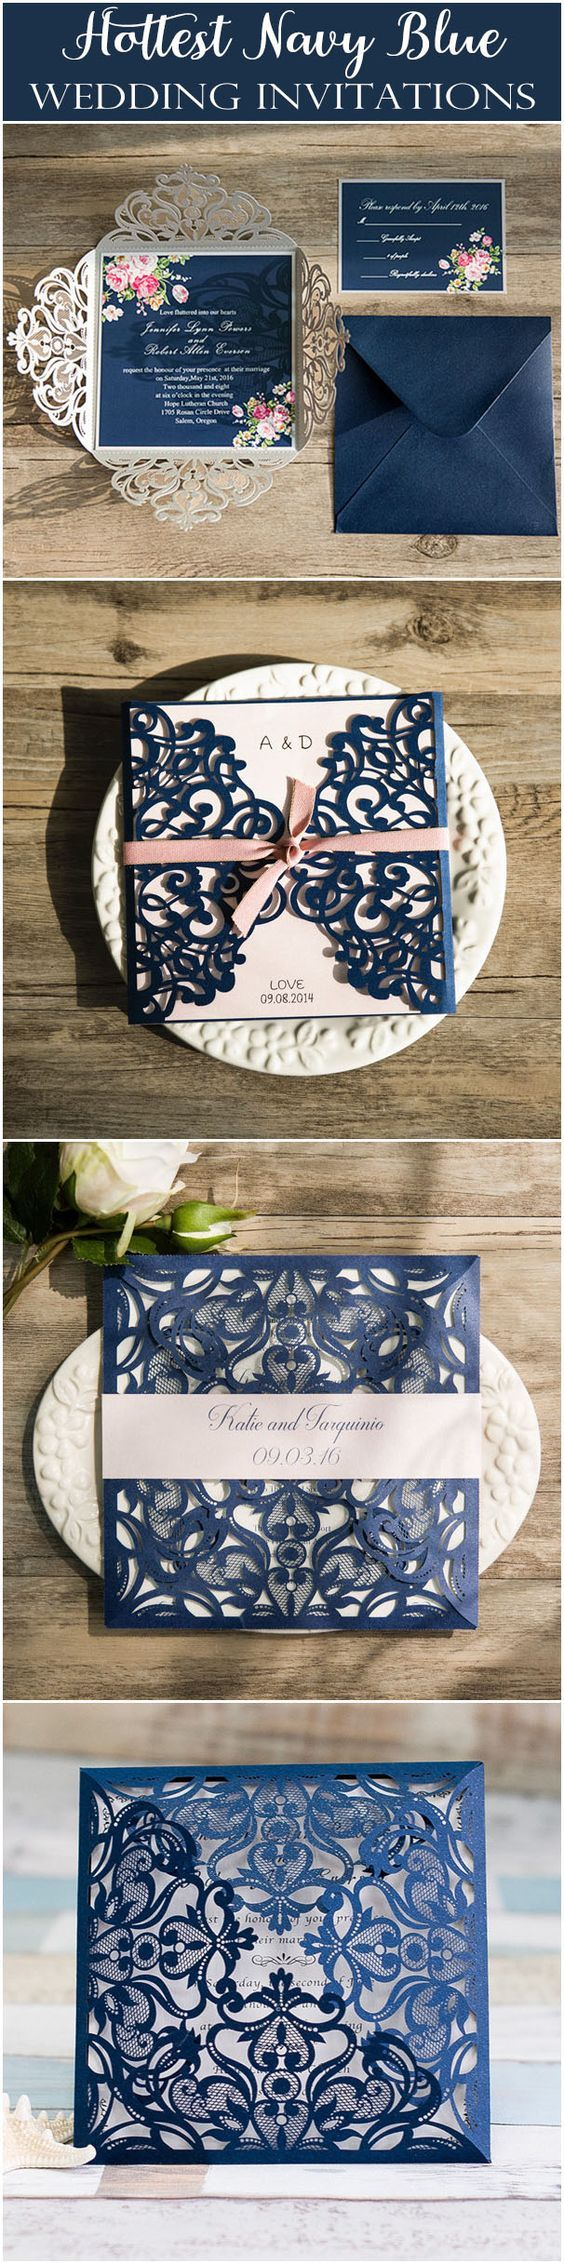 Top 20 Hotsale Navy Blue Wedding Invitations